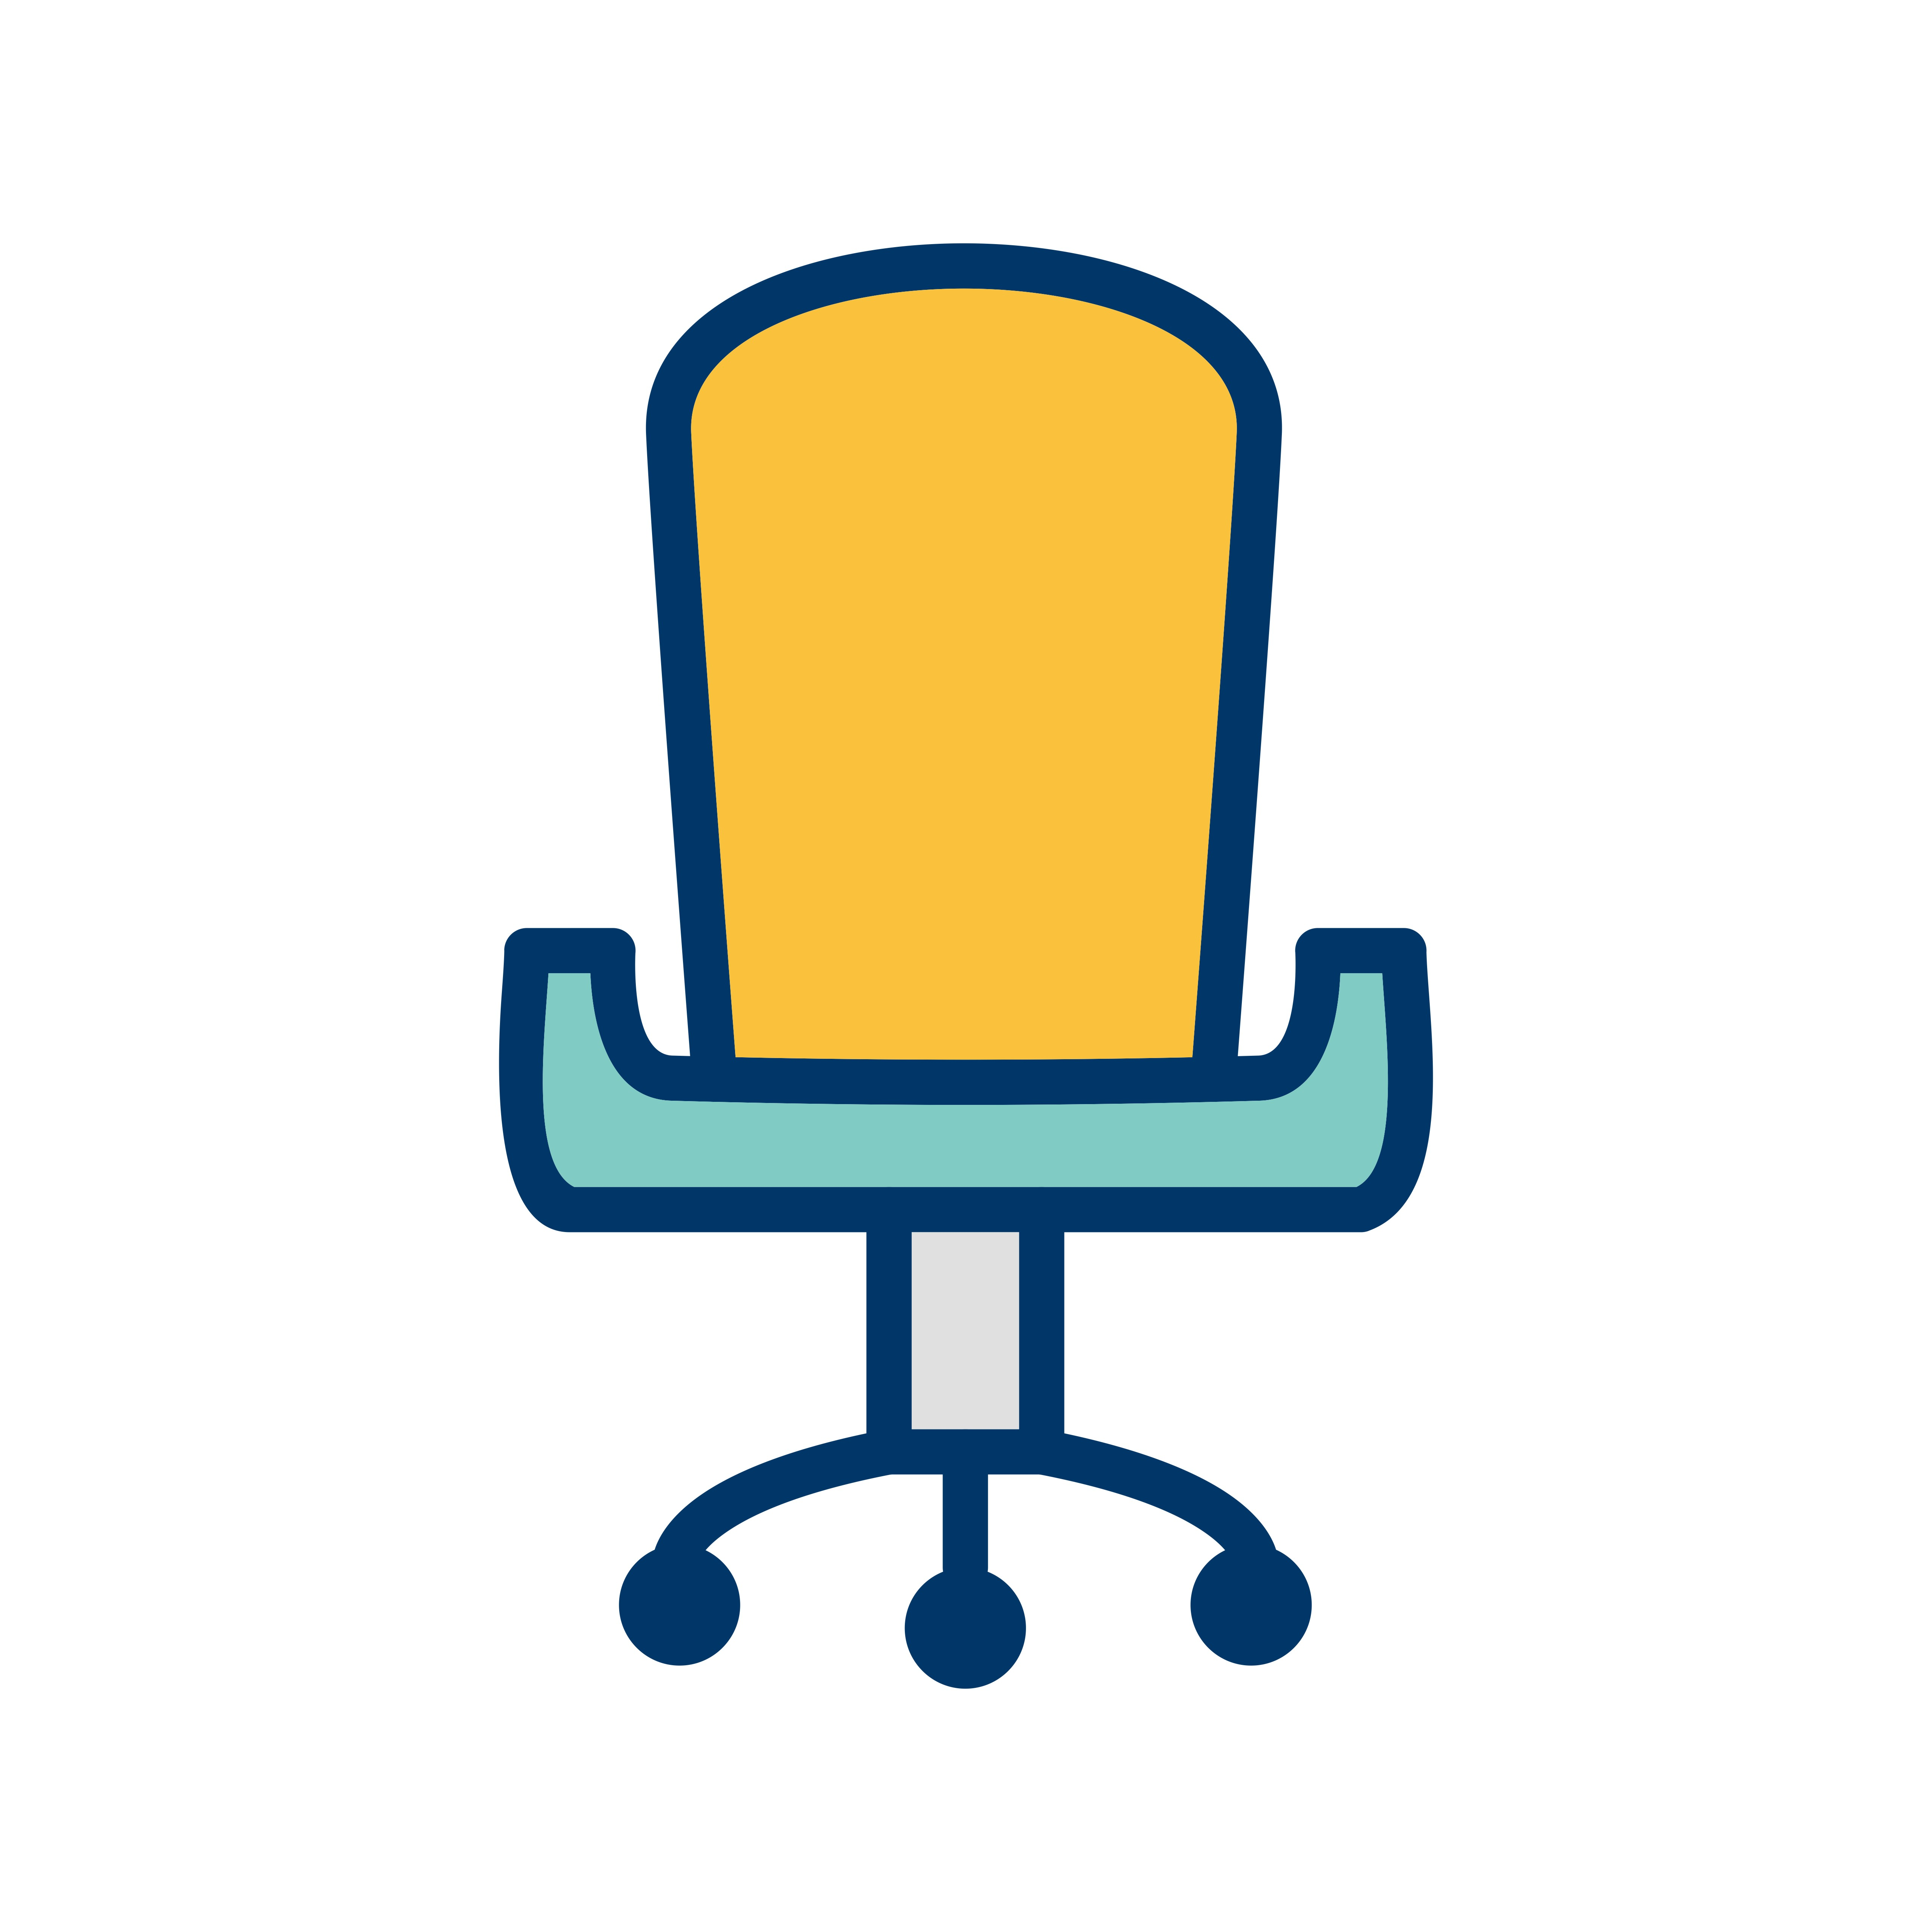 Office Chair Vector Icon 353196 - Download Free Vectors ...